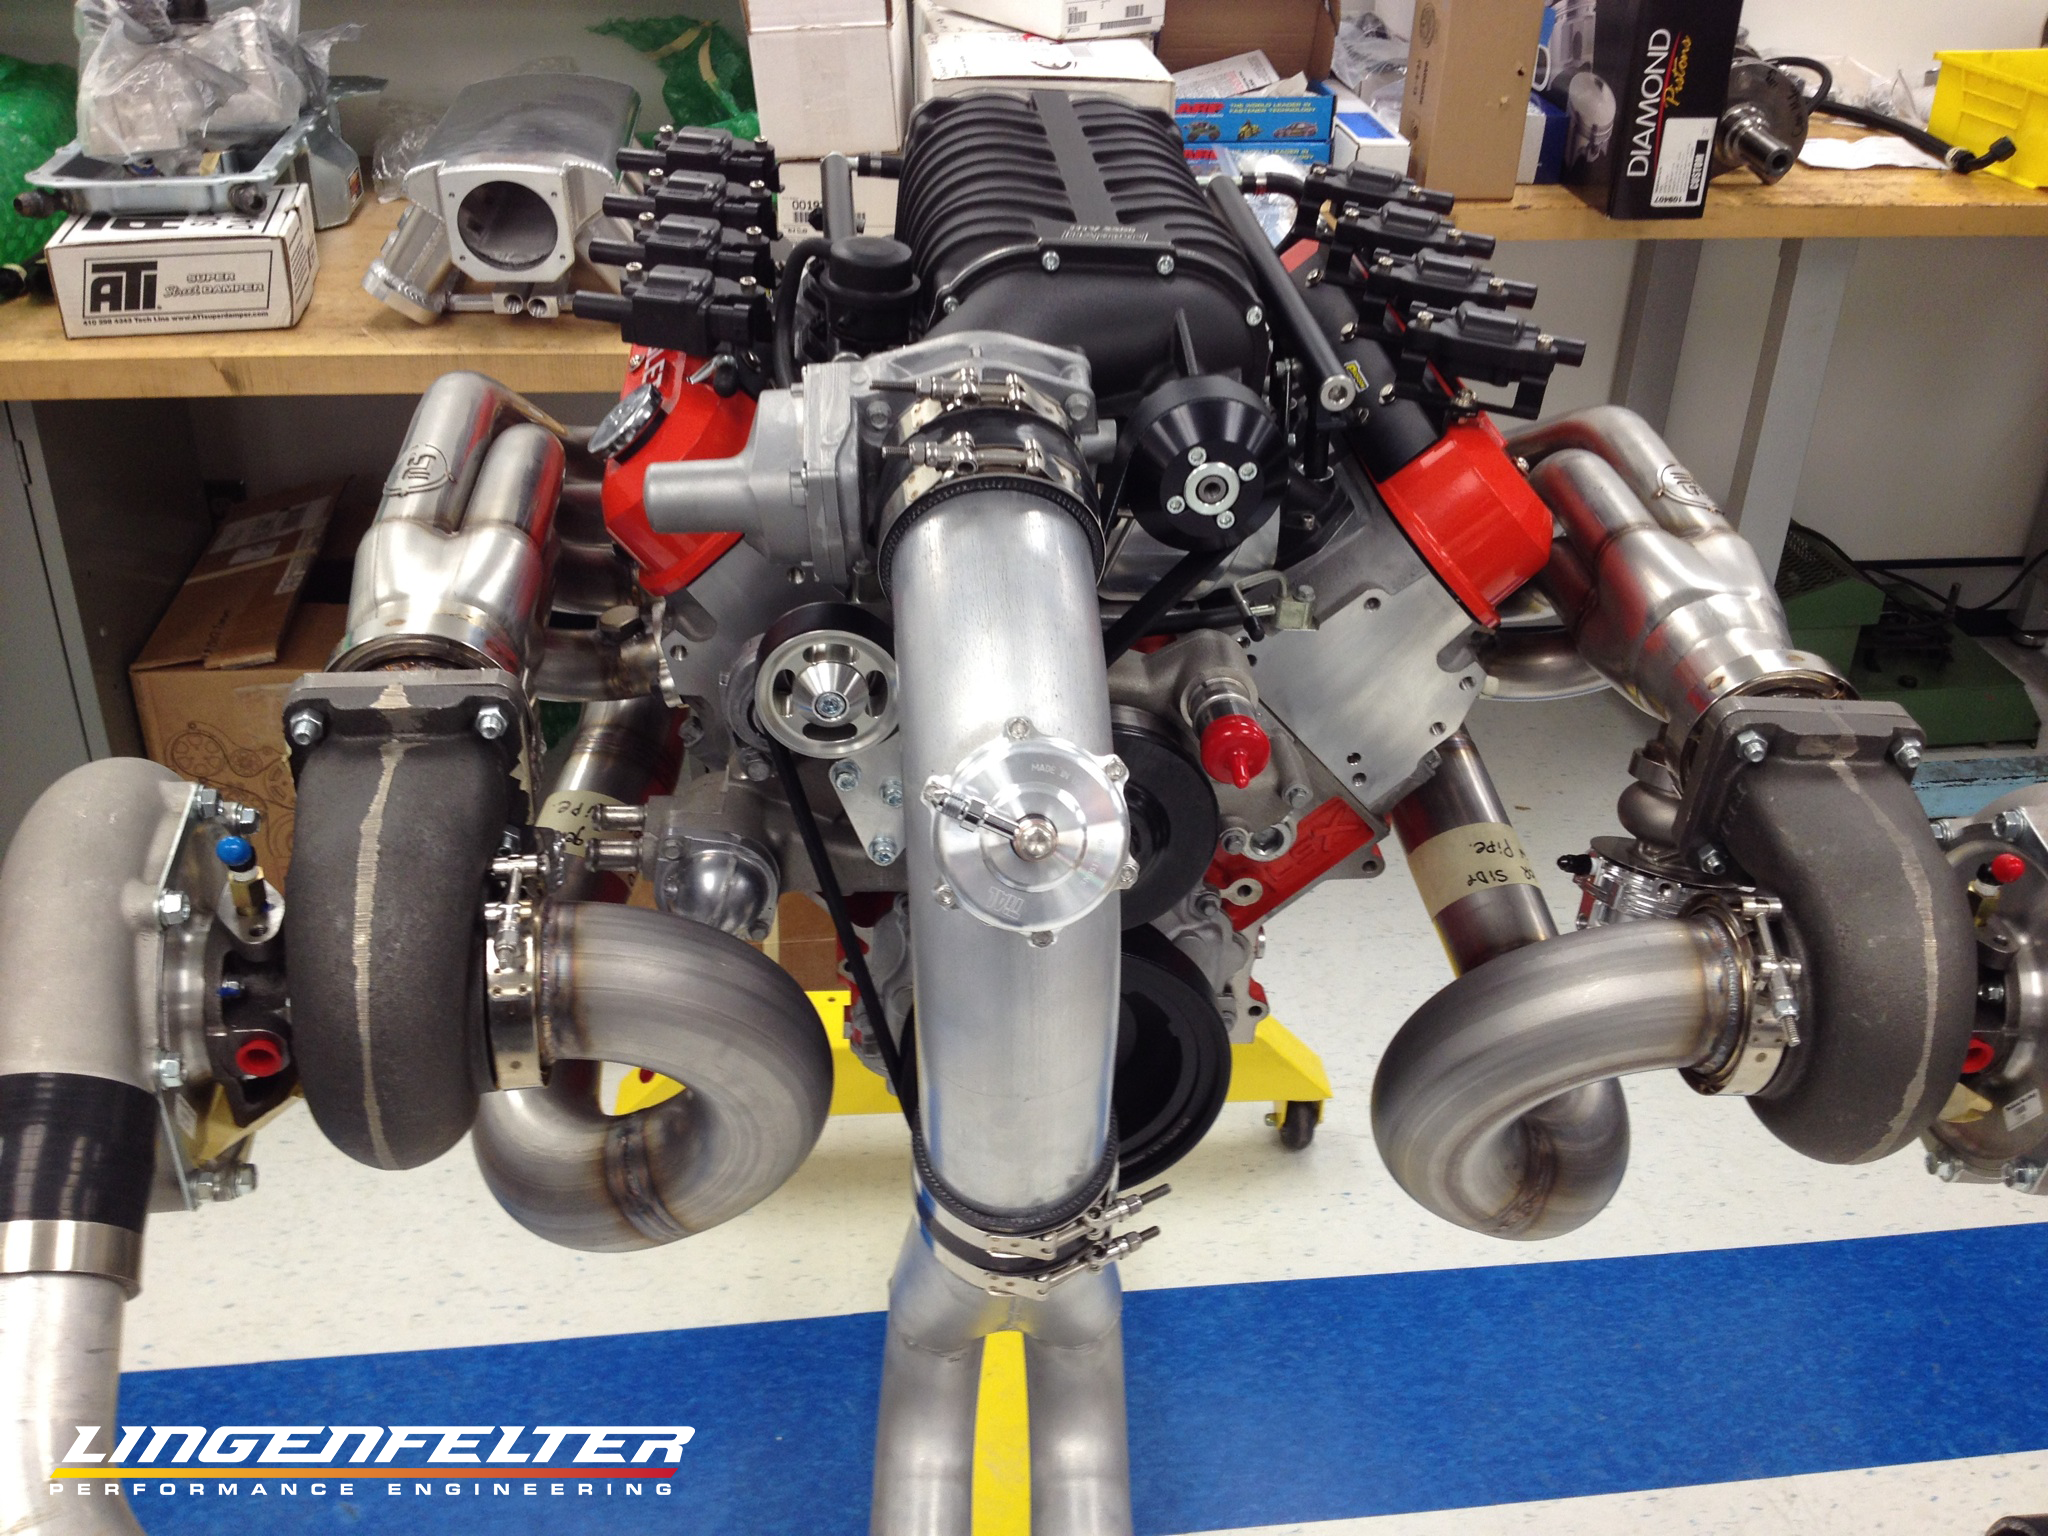 Pin by Lingenfelter Performance Engineering on Lingenfelter Engines